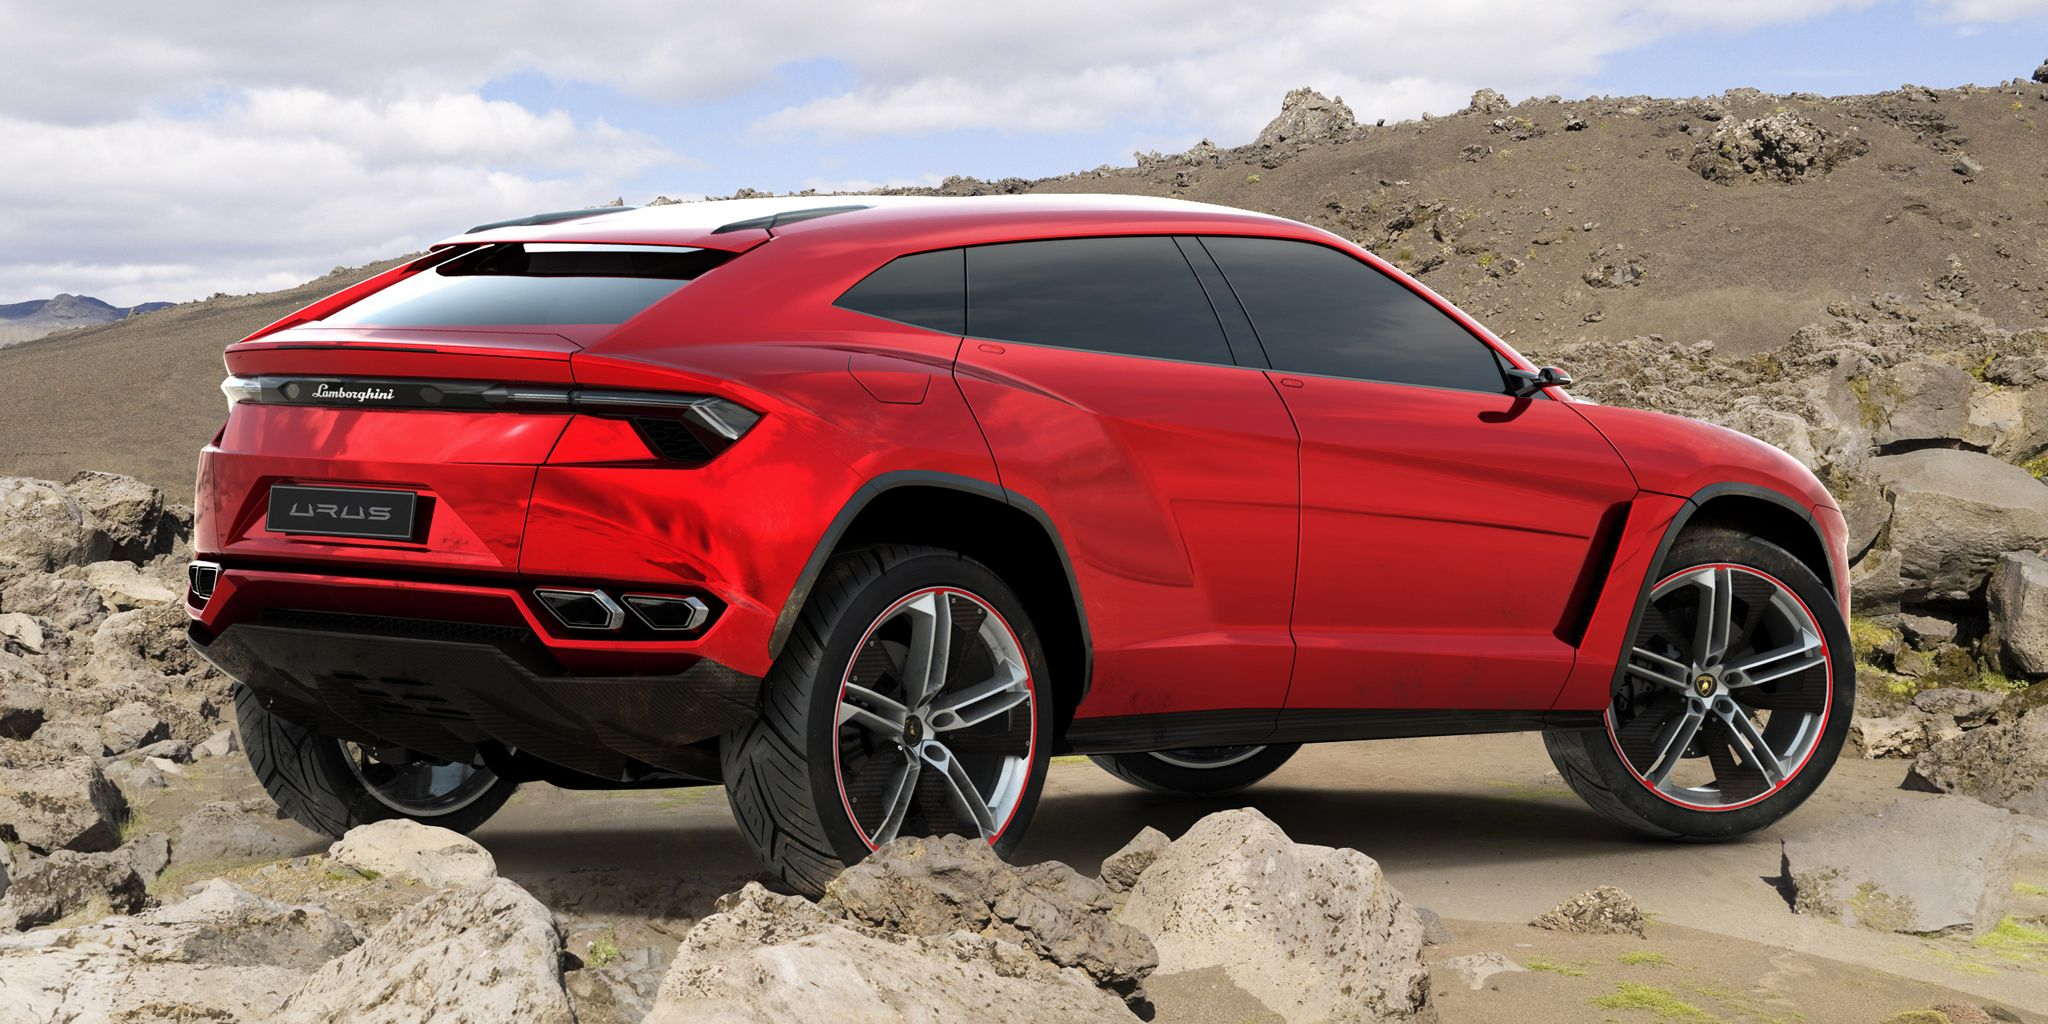 2019 Lamborghini Urus News, Price, Release Date , Everything